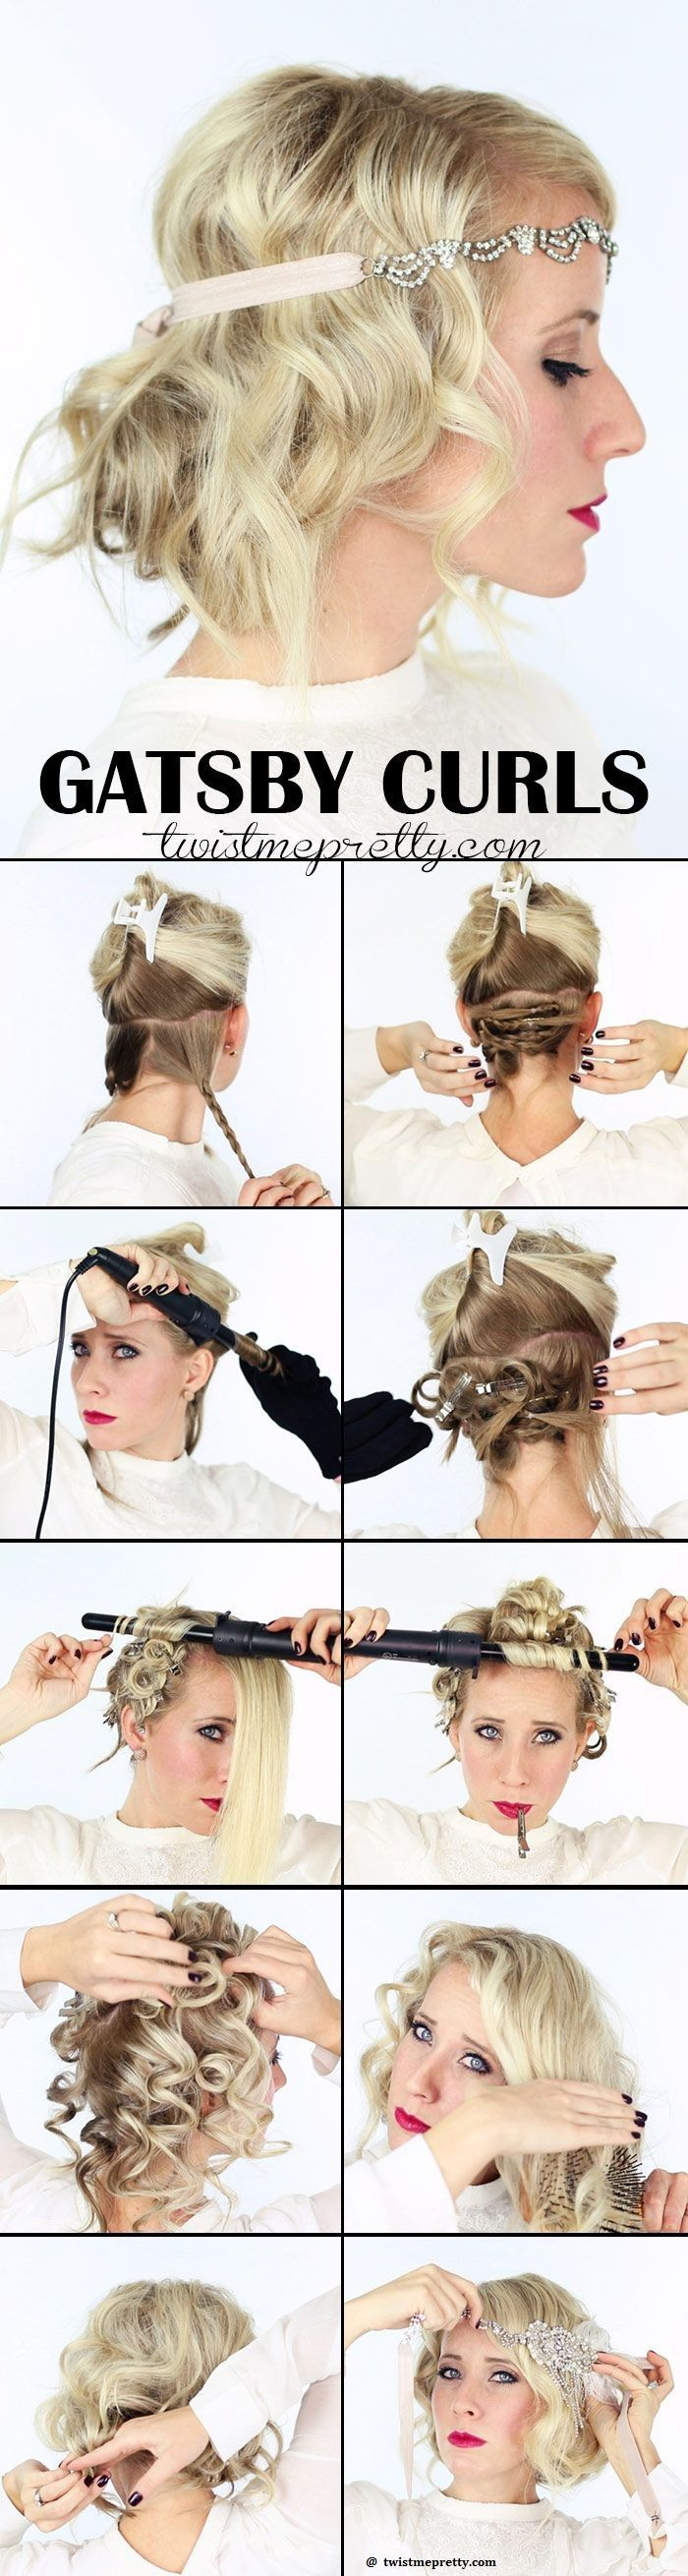 1000 Ideas About Coiffure Soire On Pinterest Coiffure Soire